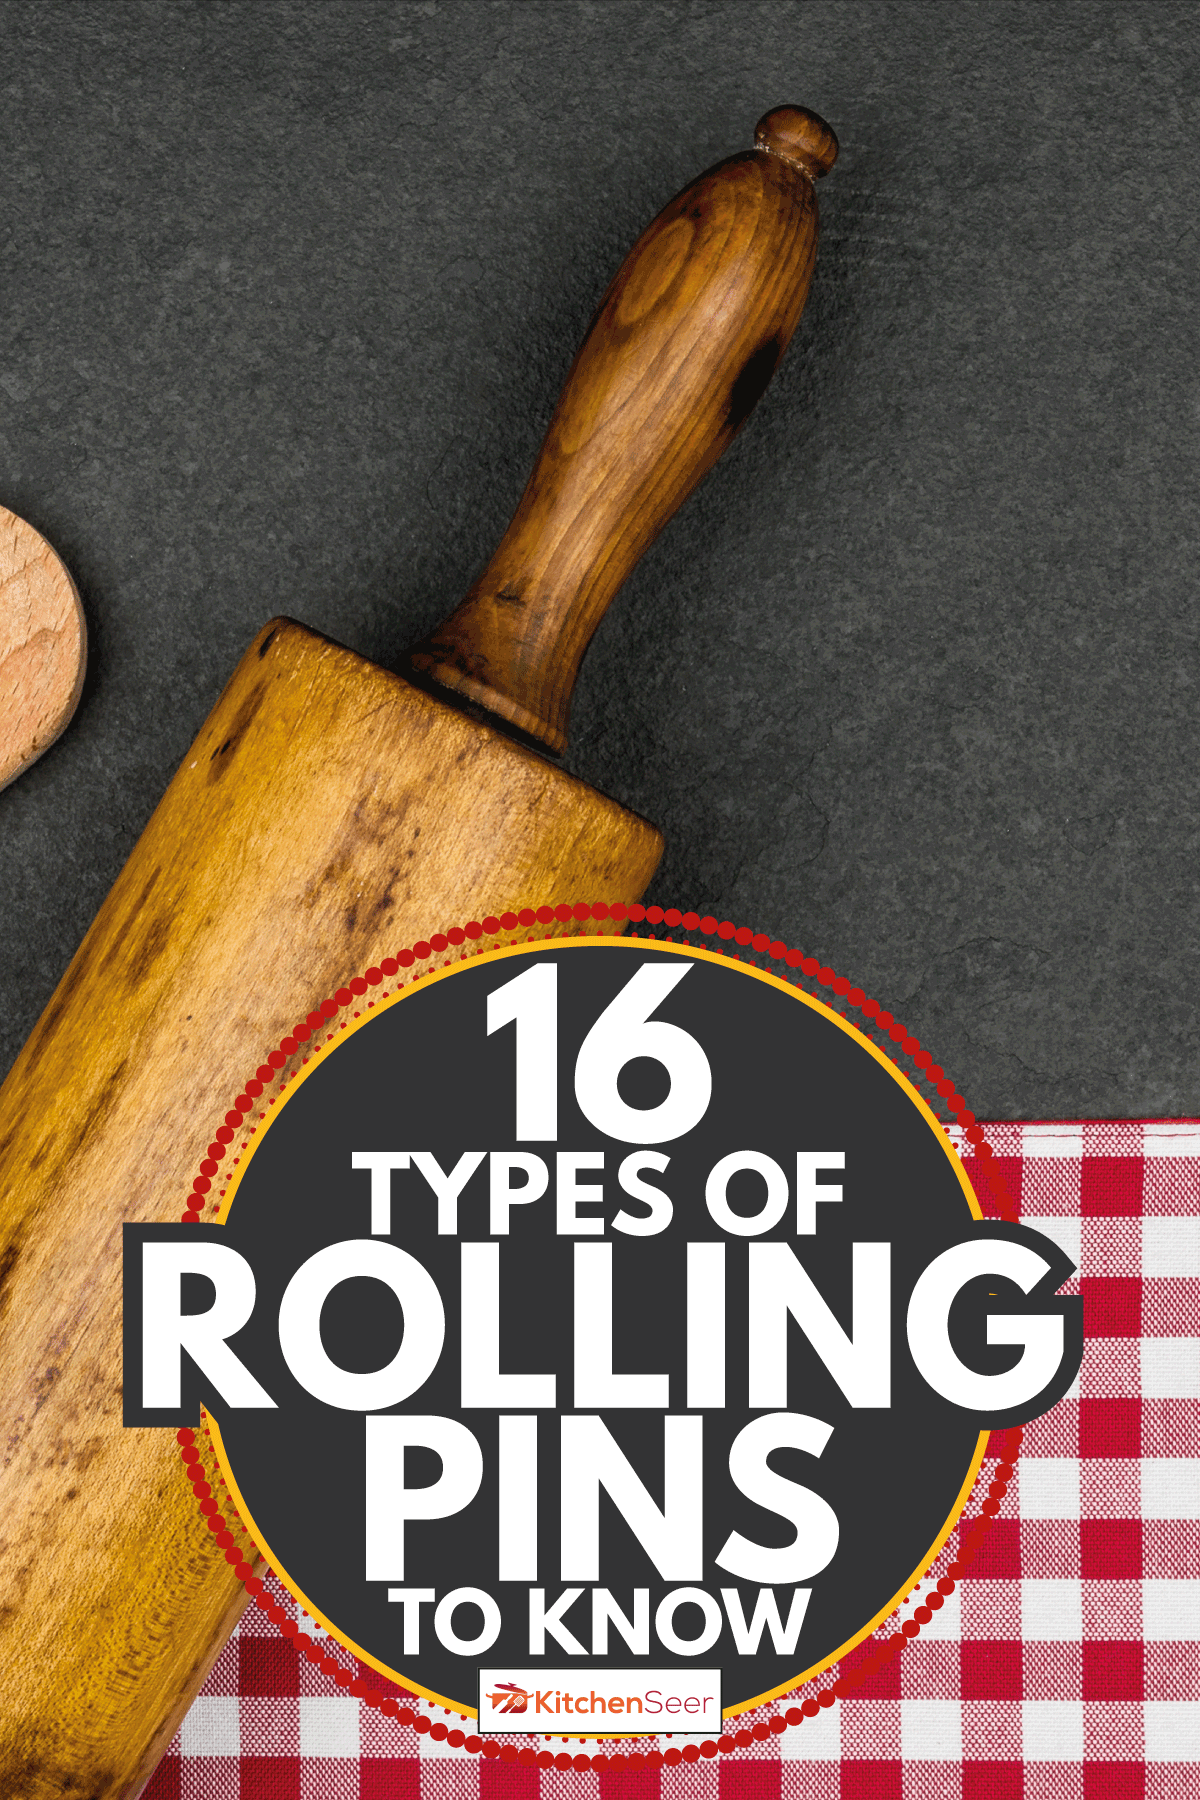 Rolling pin with wooden spoon on a slate plate. 16 Types Of Rolling Pins To Know